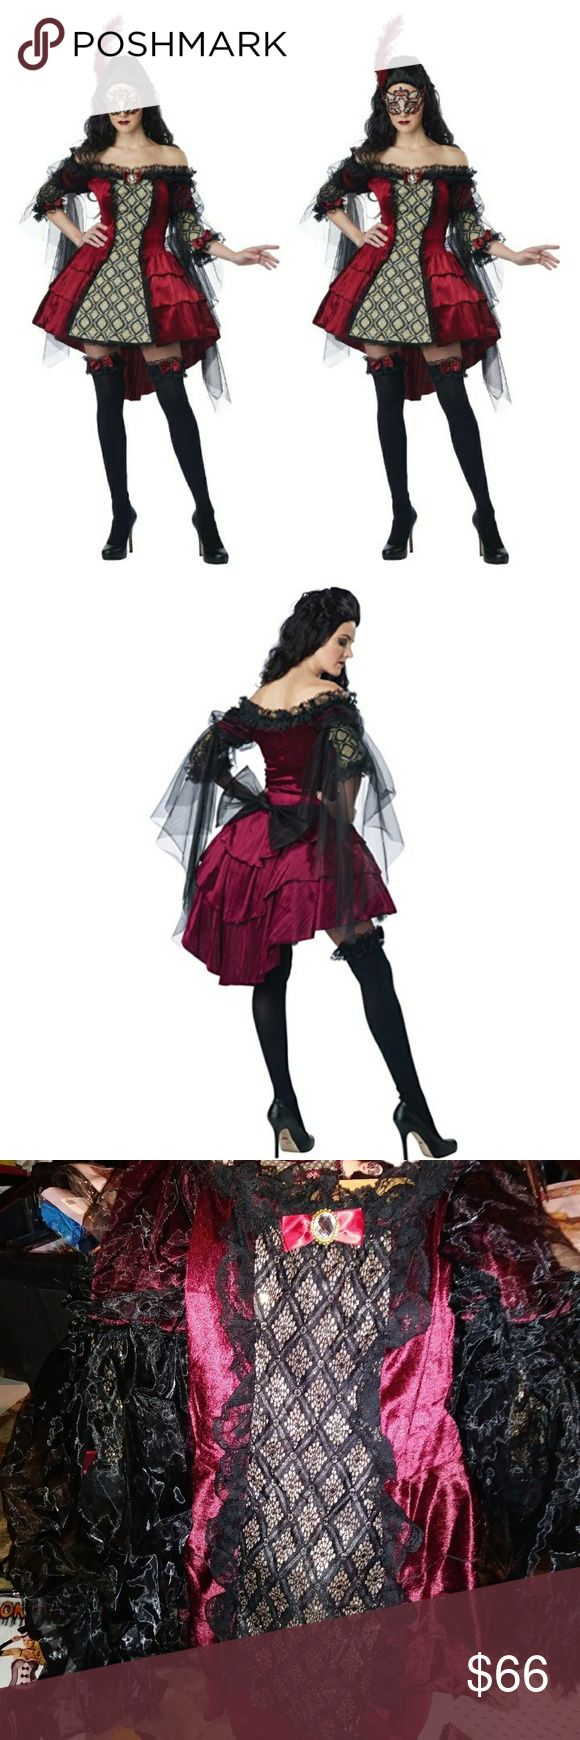 "5 piece masquerade​ renaissance beauty Halloween This mysterious masquerade renaissance babe is sure to draw all the attention at the ball. This costume features a victorian style hi-low dress with detailed drape sleeves, petticoat ,mask with feathers and 2 garters.  Shoes not included. Pit to pit 16 inches. Waist 30 inches. Front length 24"" Back length 35"". Soft stretch fabric,back zipper. S.shop Dresses"